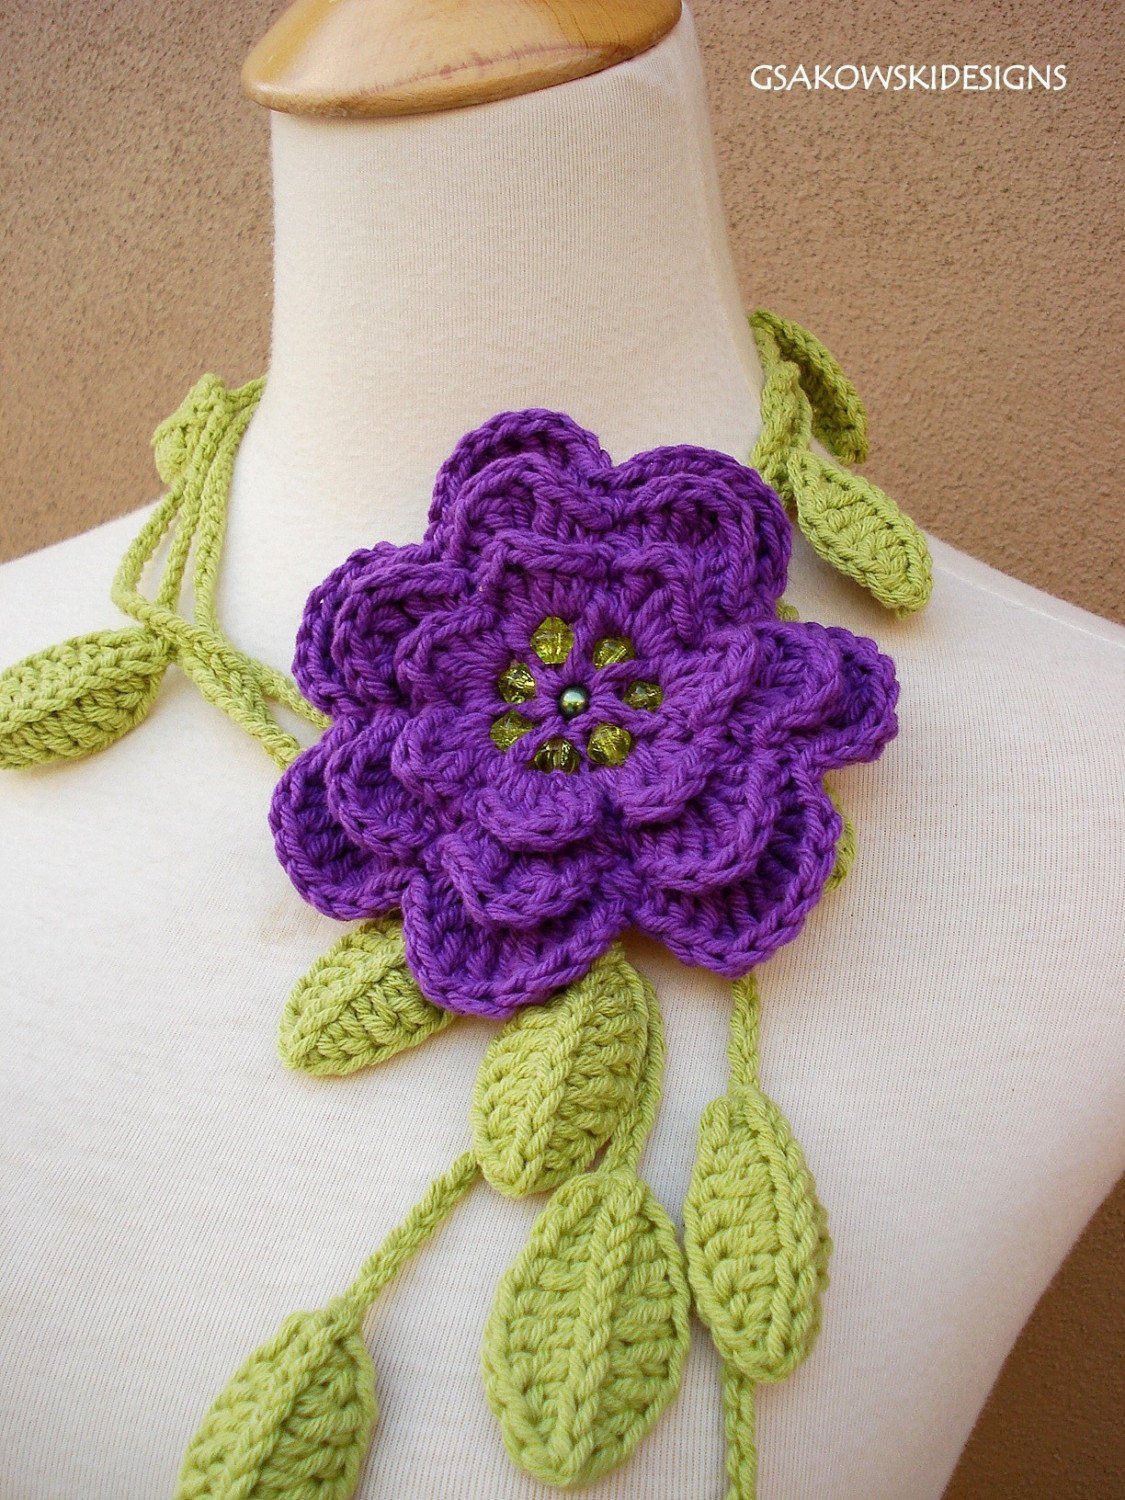 Free Crochet Flower Patterns New Crocheted Flower Scarf Pattern Crochet and Knitting Patterns Of Amazing 42 Images Free Crochet Flower Patterns